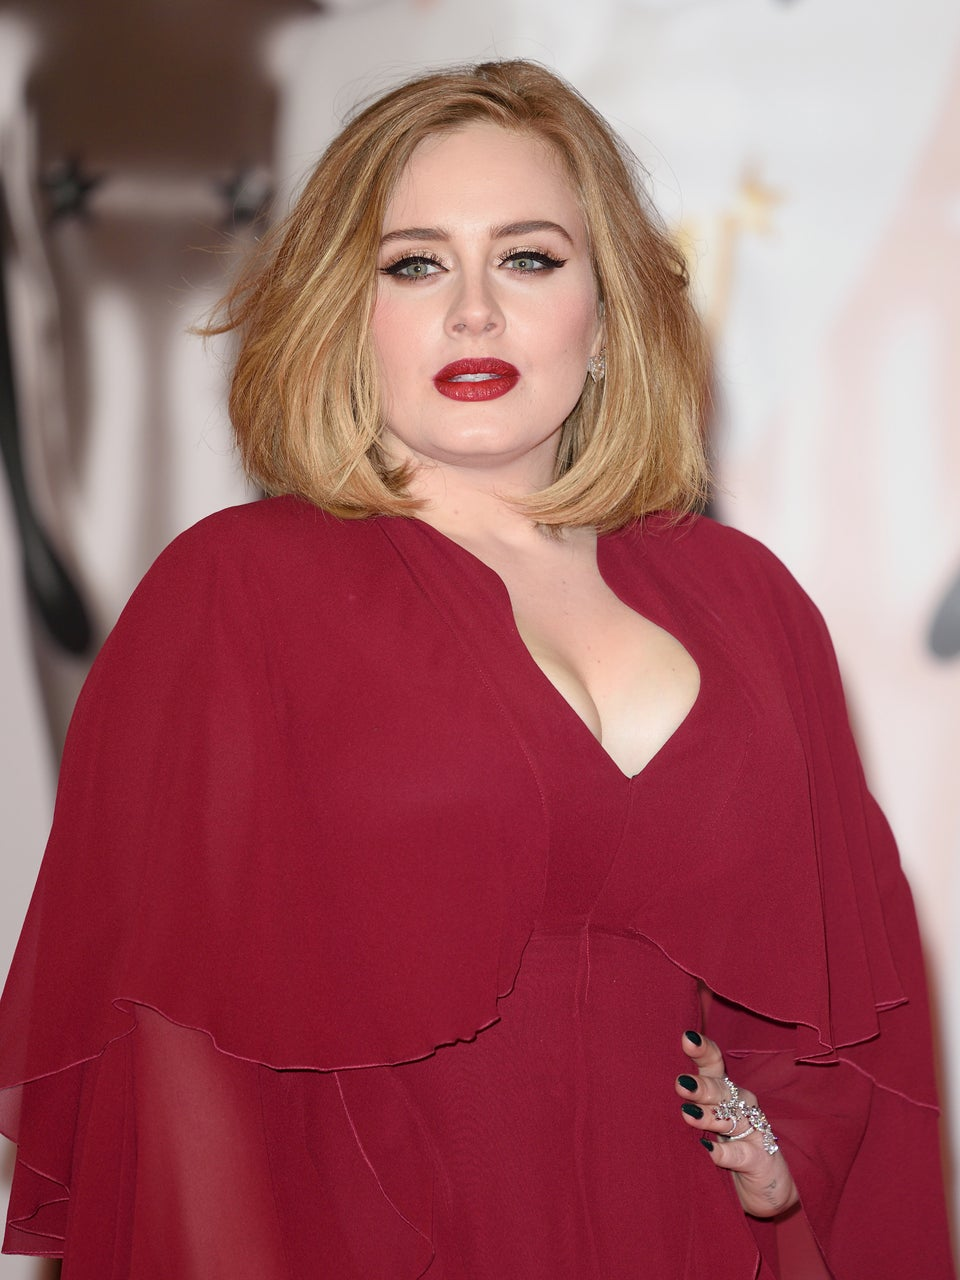 Adele Wanted To CastA Black Actor In 'Hello' Video To Address Police Brutality